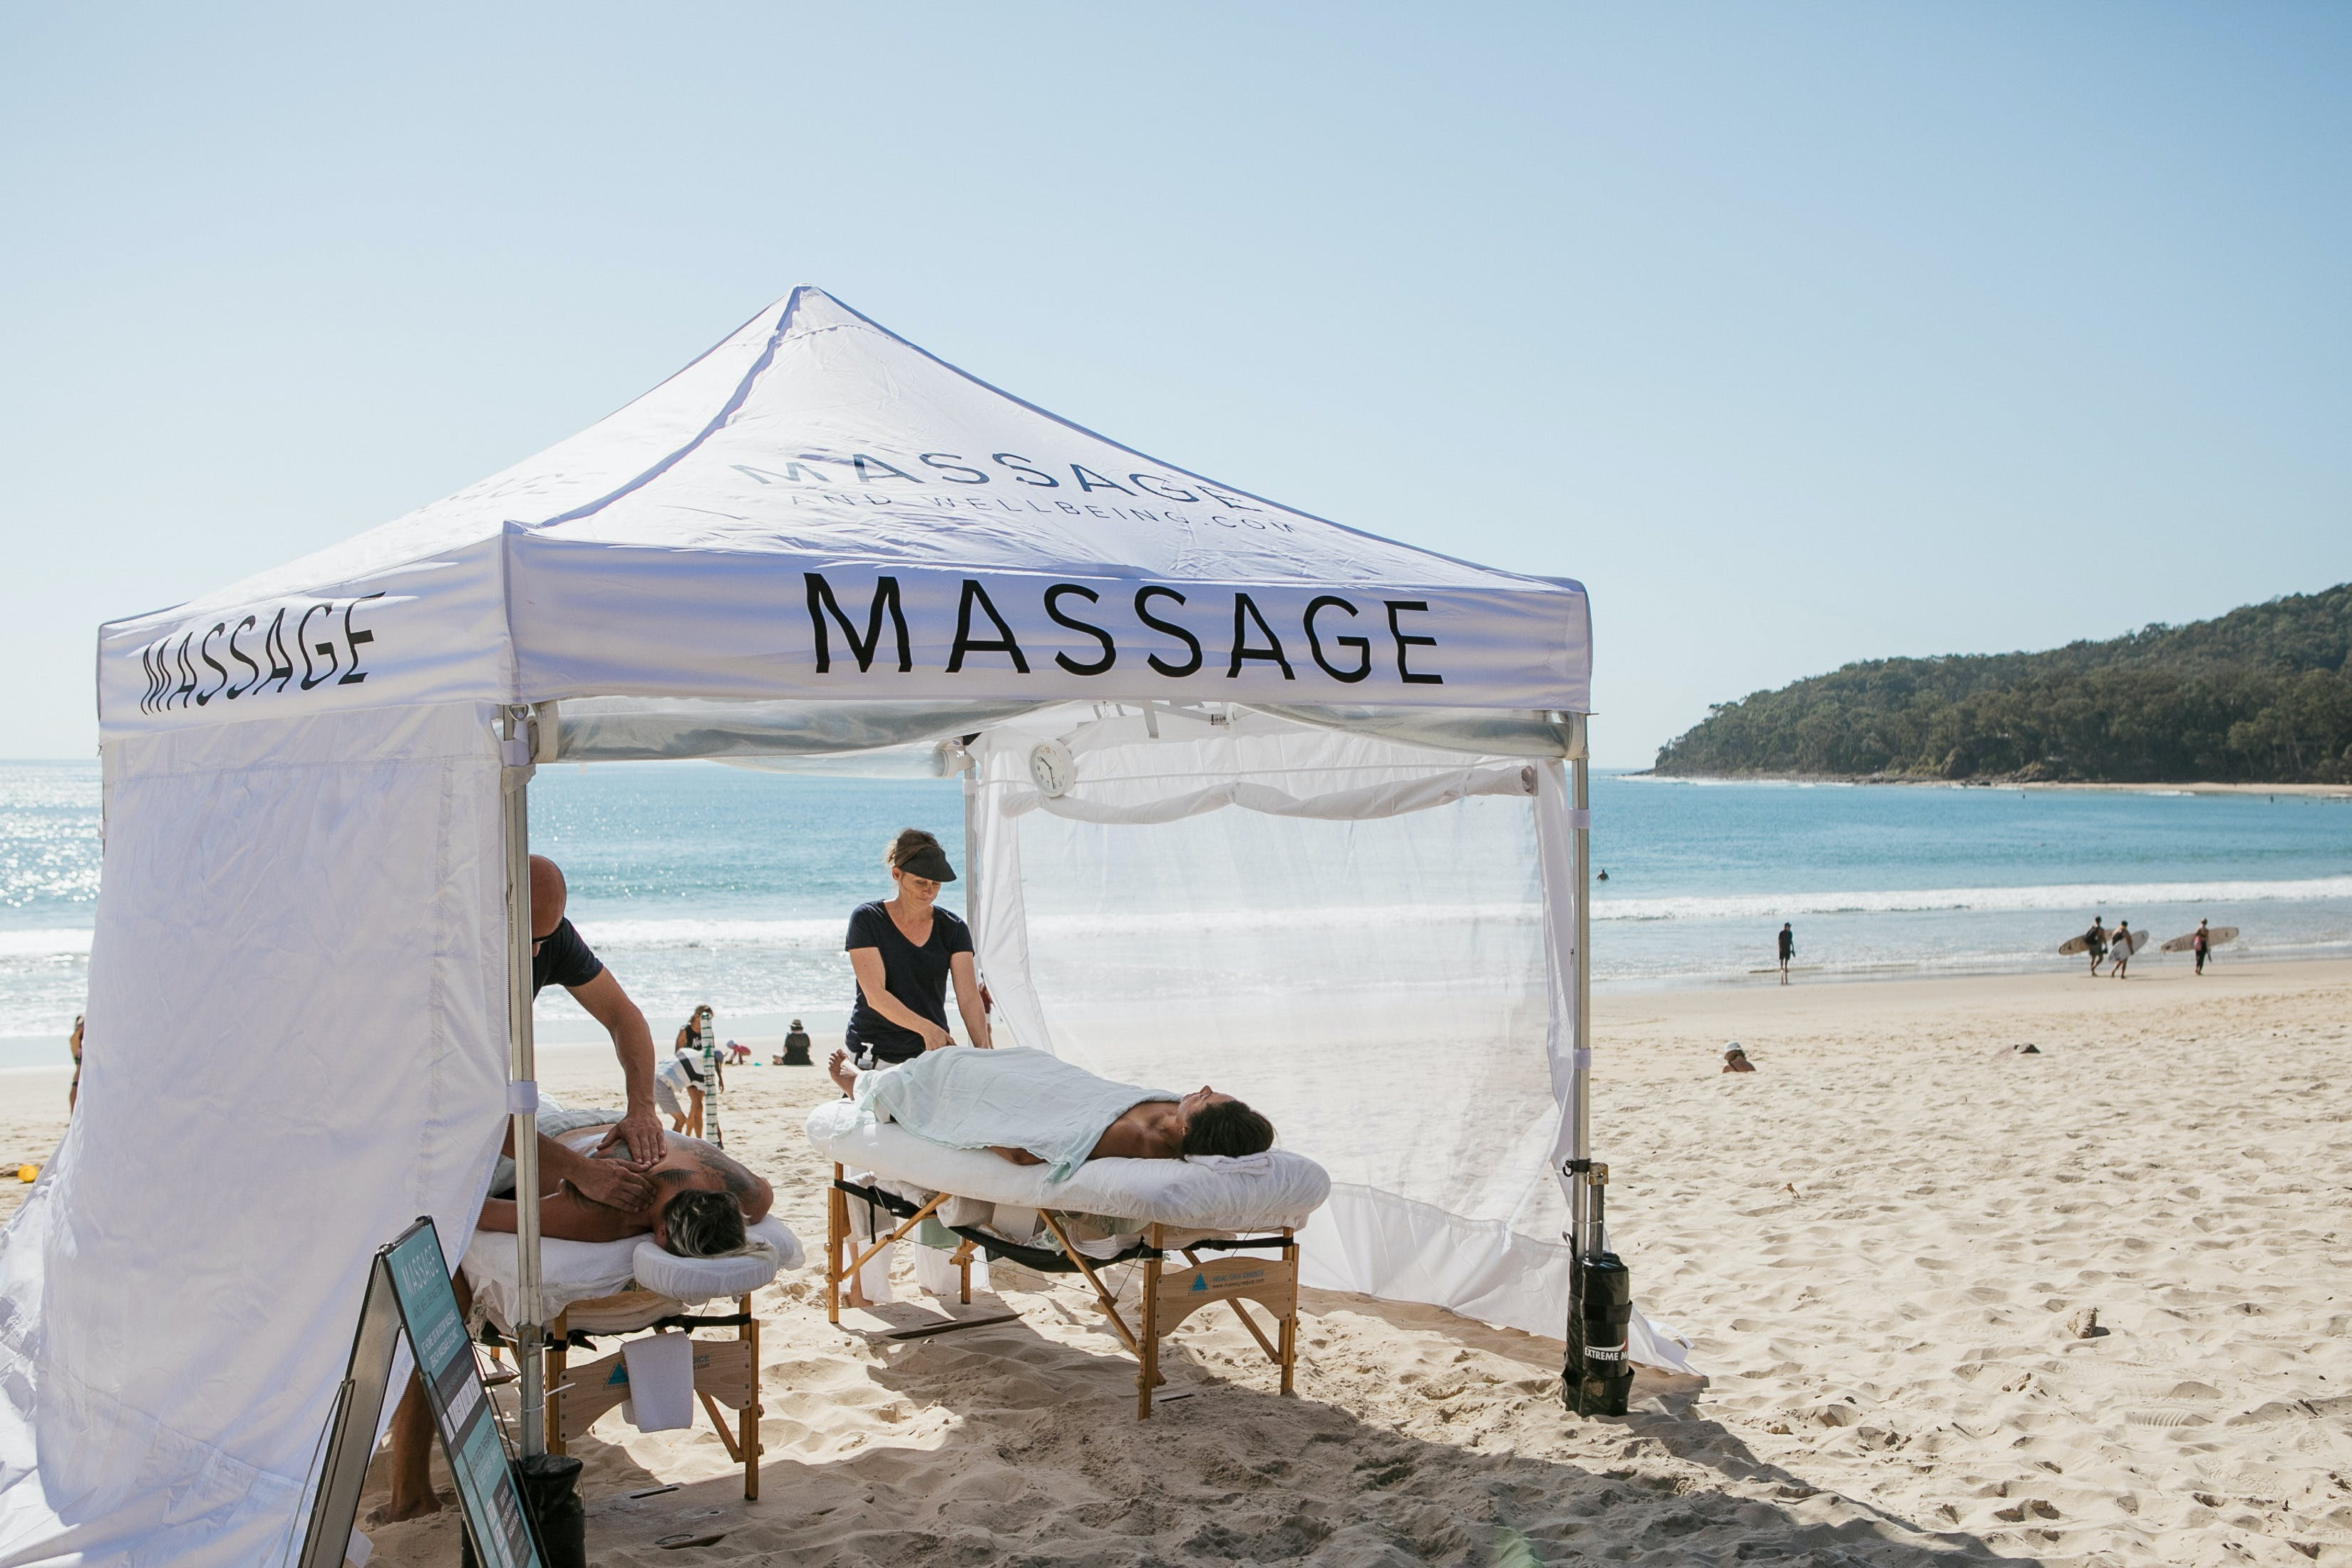 Noosa Beach Massage - tourismnoosa.com